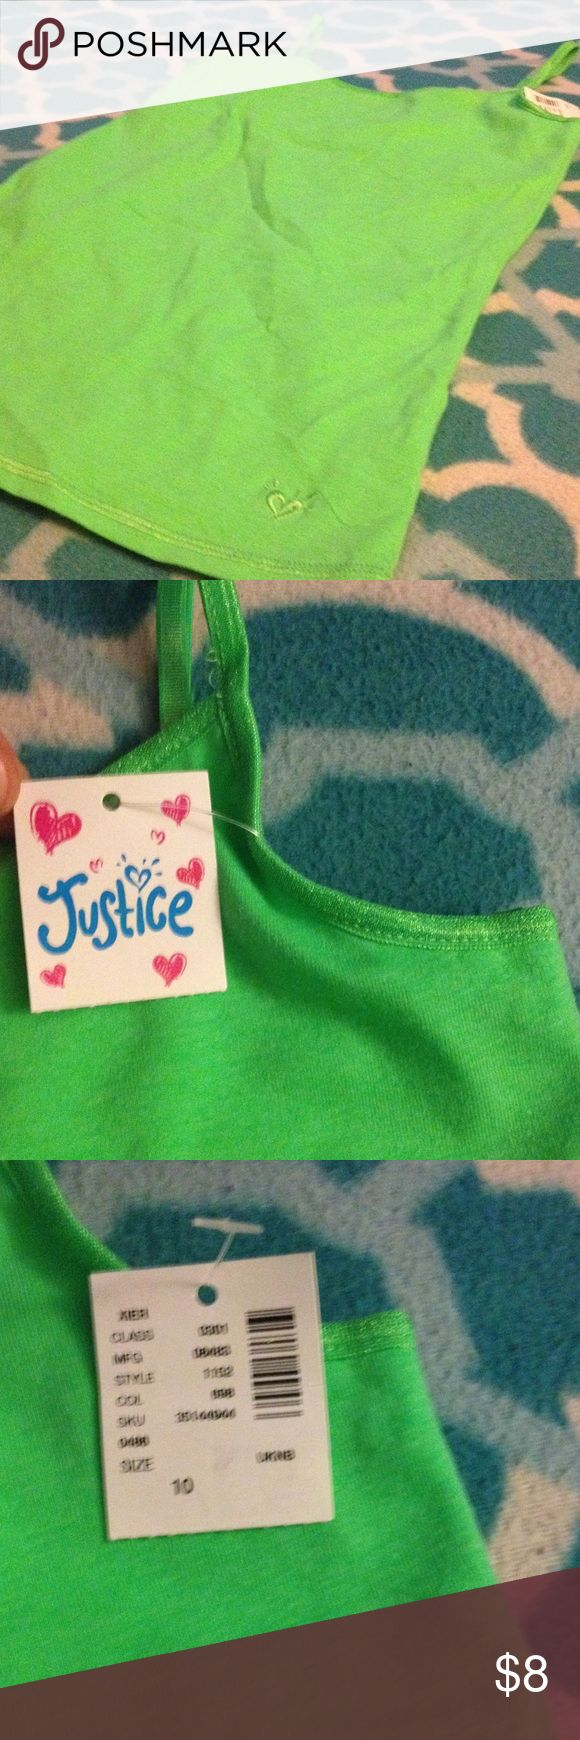 Justice tang top Girls size 10, Justice, green spaghetti strap, tang top, tag on, New Justice Shirts & Tops Tank Tops